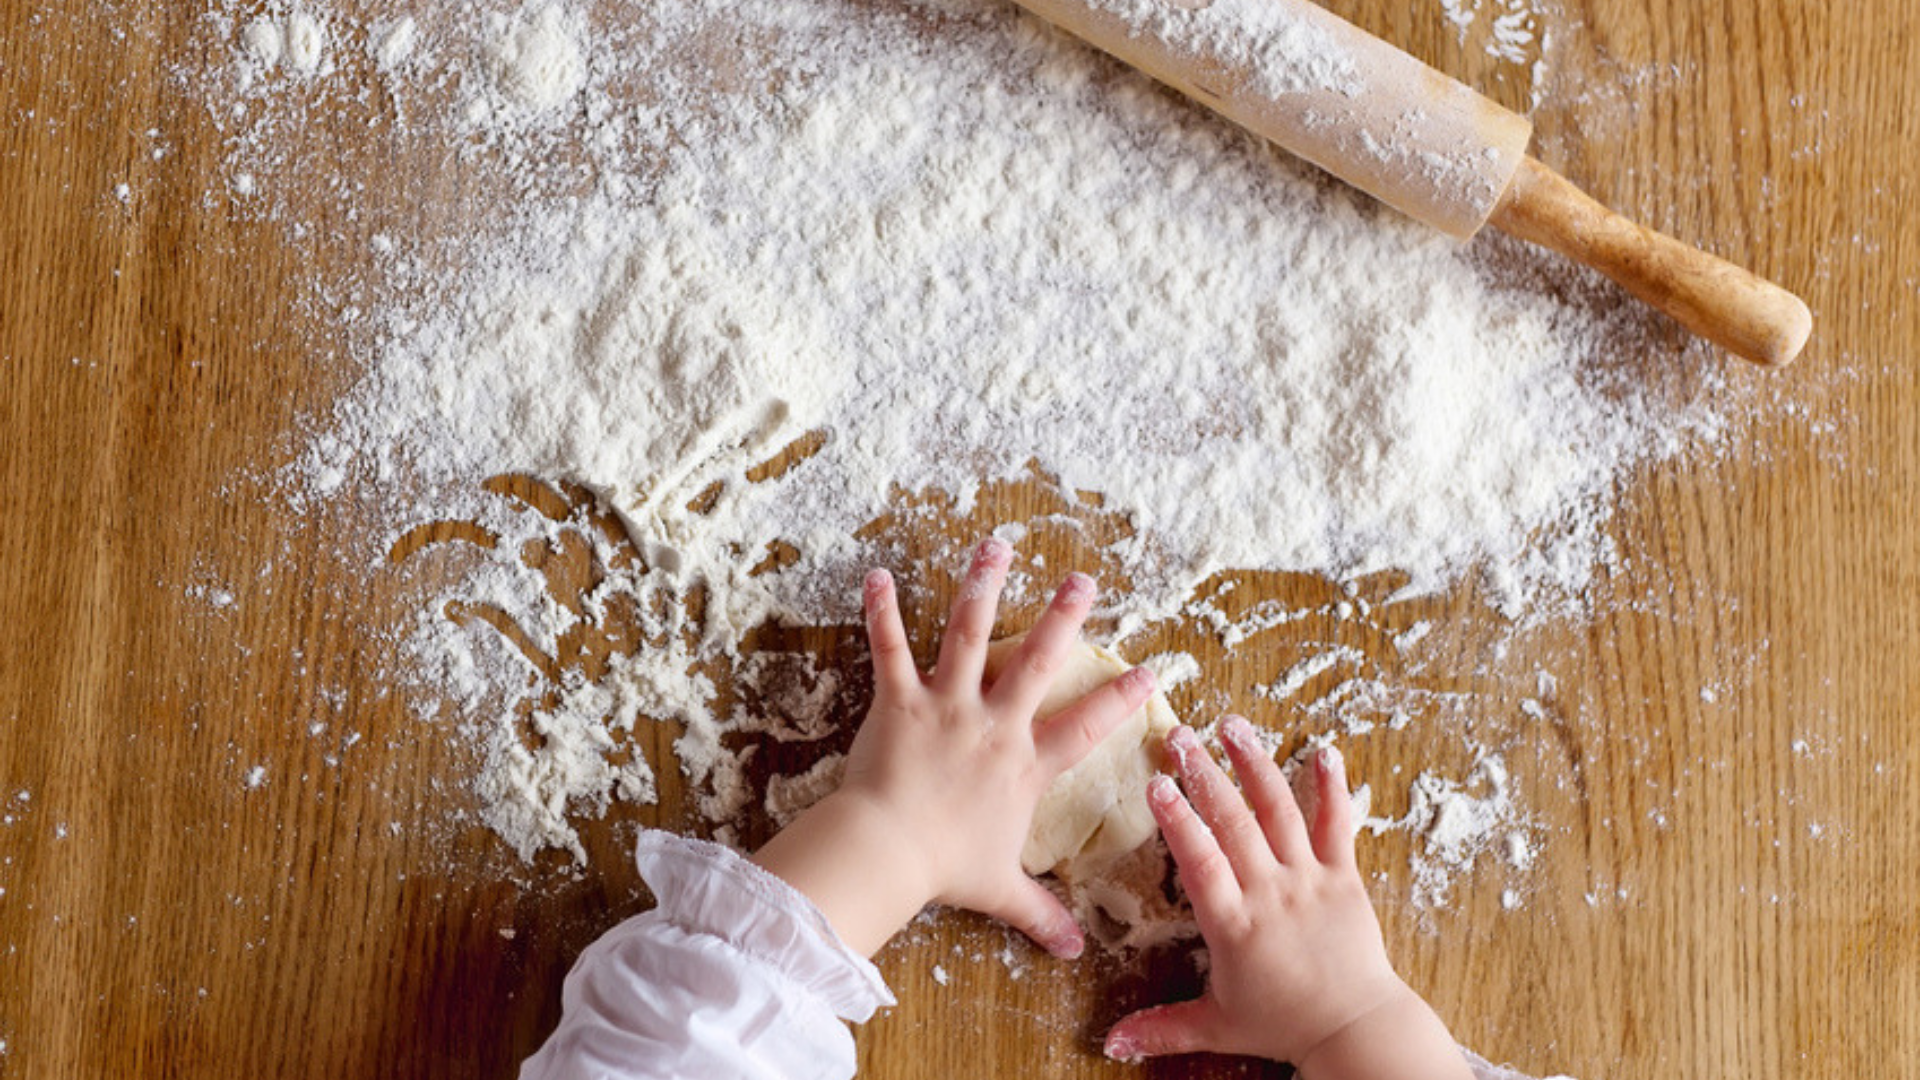 fathers day home baking ideas with children